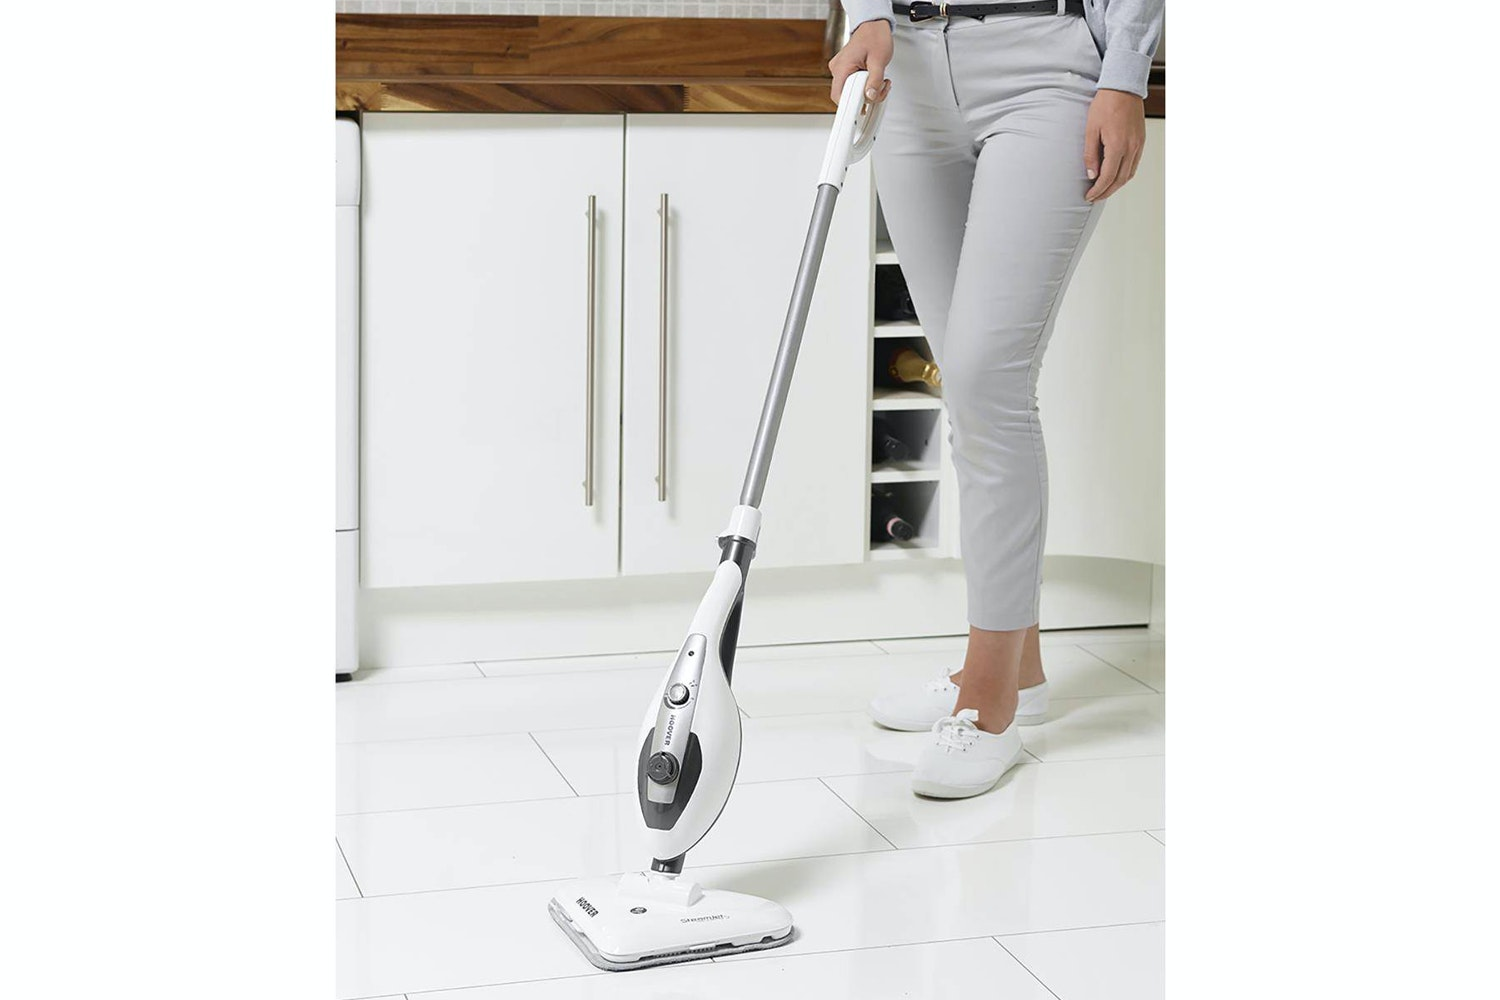 Hoover SteamJet 2 In 1 Steam Cleaner | S2IN1300CA